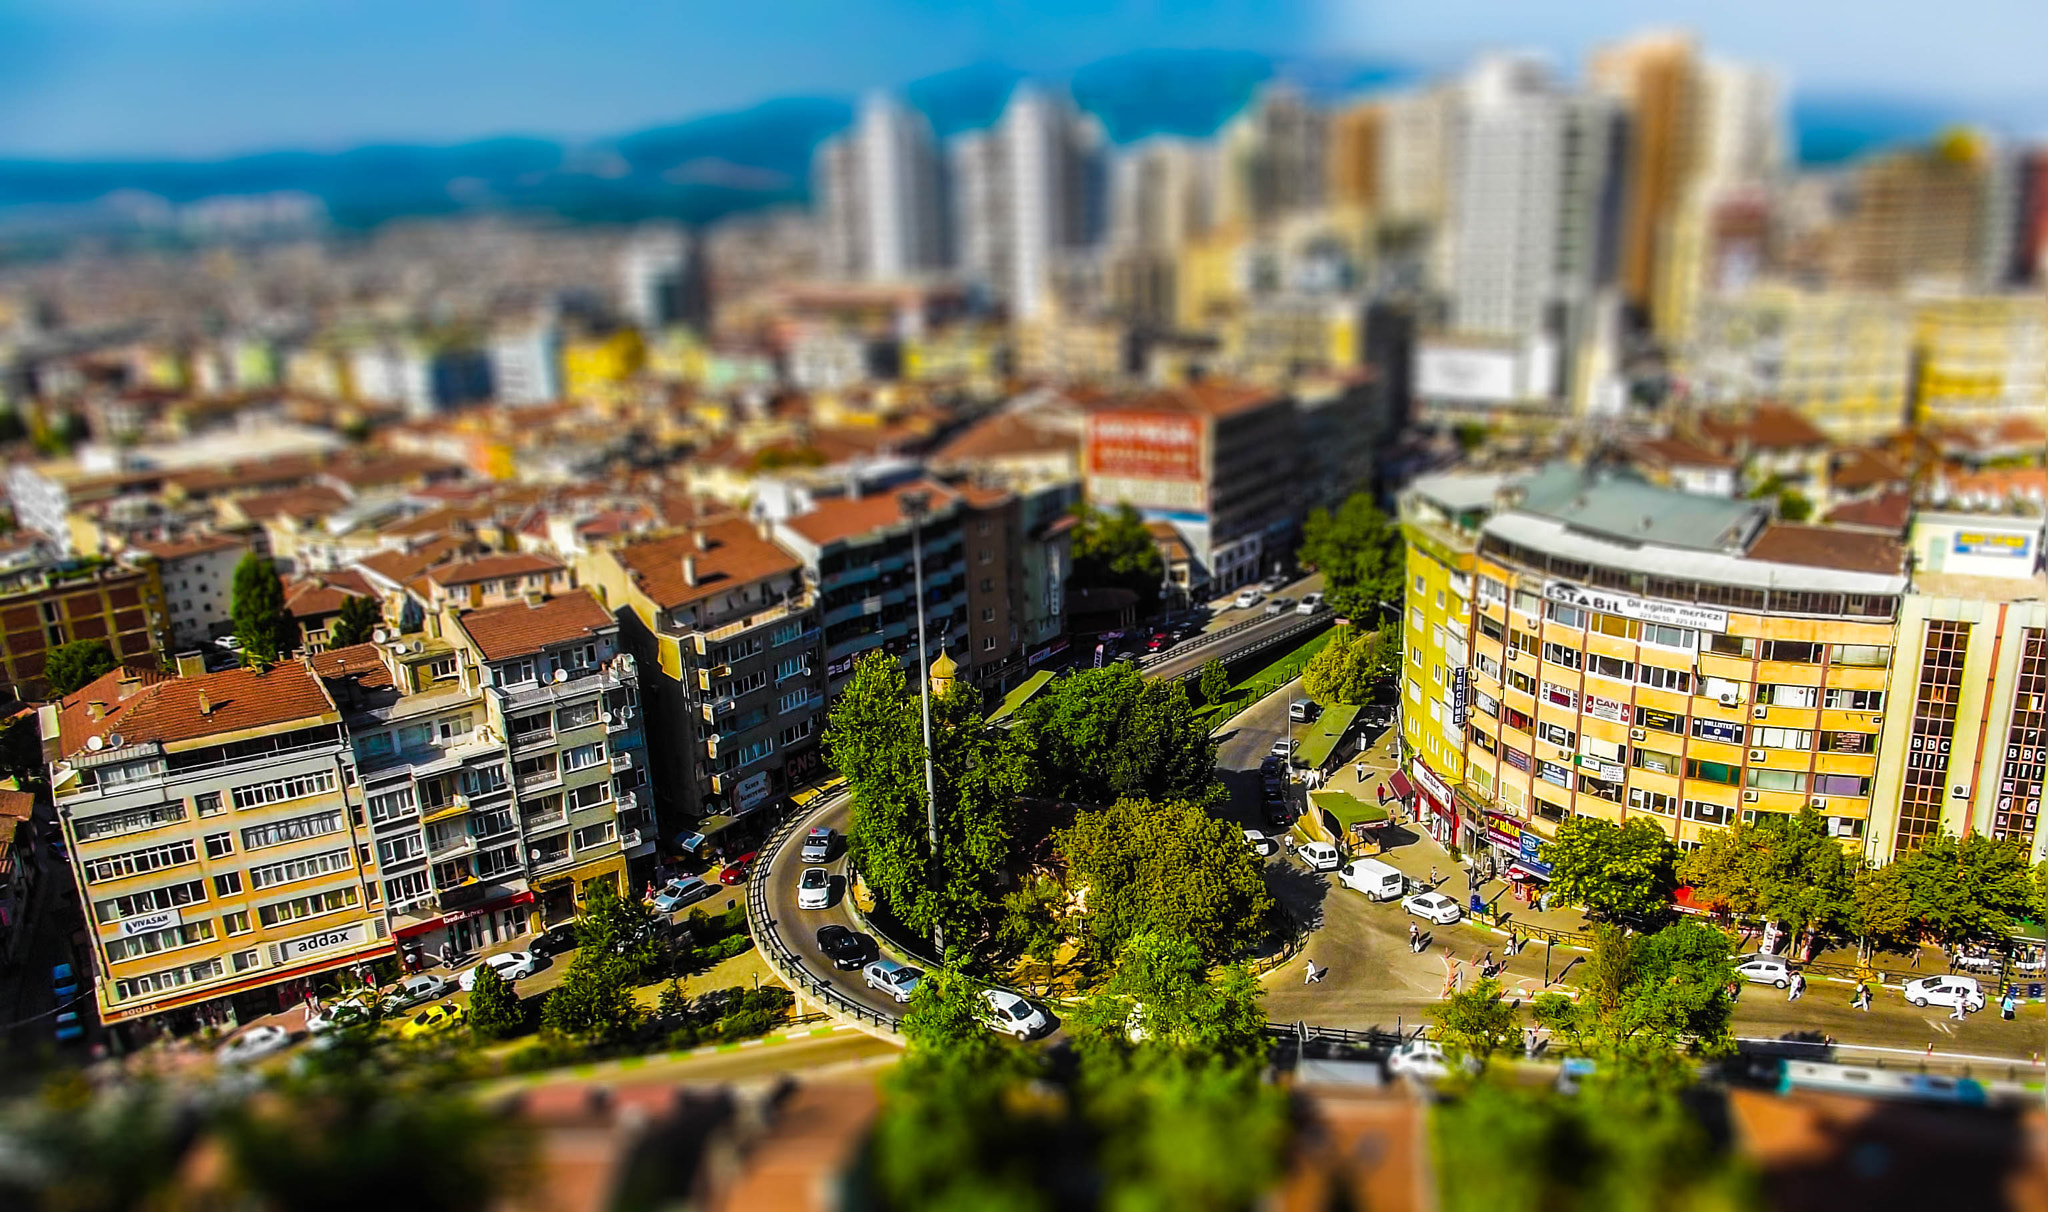 Photograph tilt & shift   by Gökhan Demirci on 500px